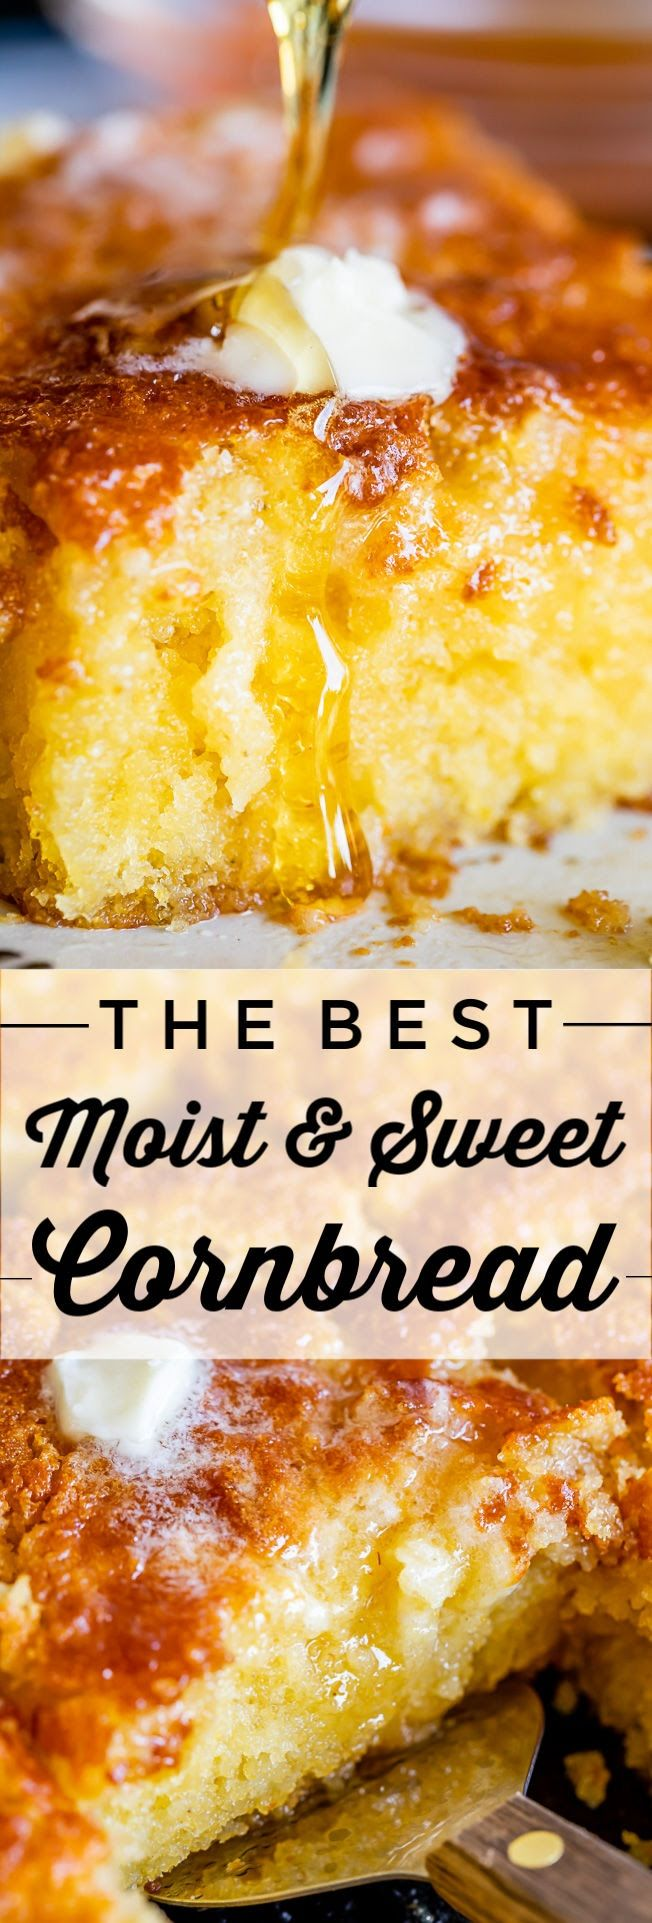 Sweet and Moist Honey Cornbread from The Food Charlatan